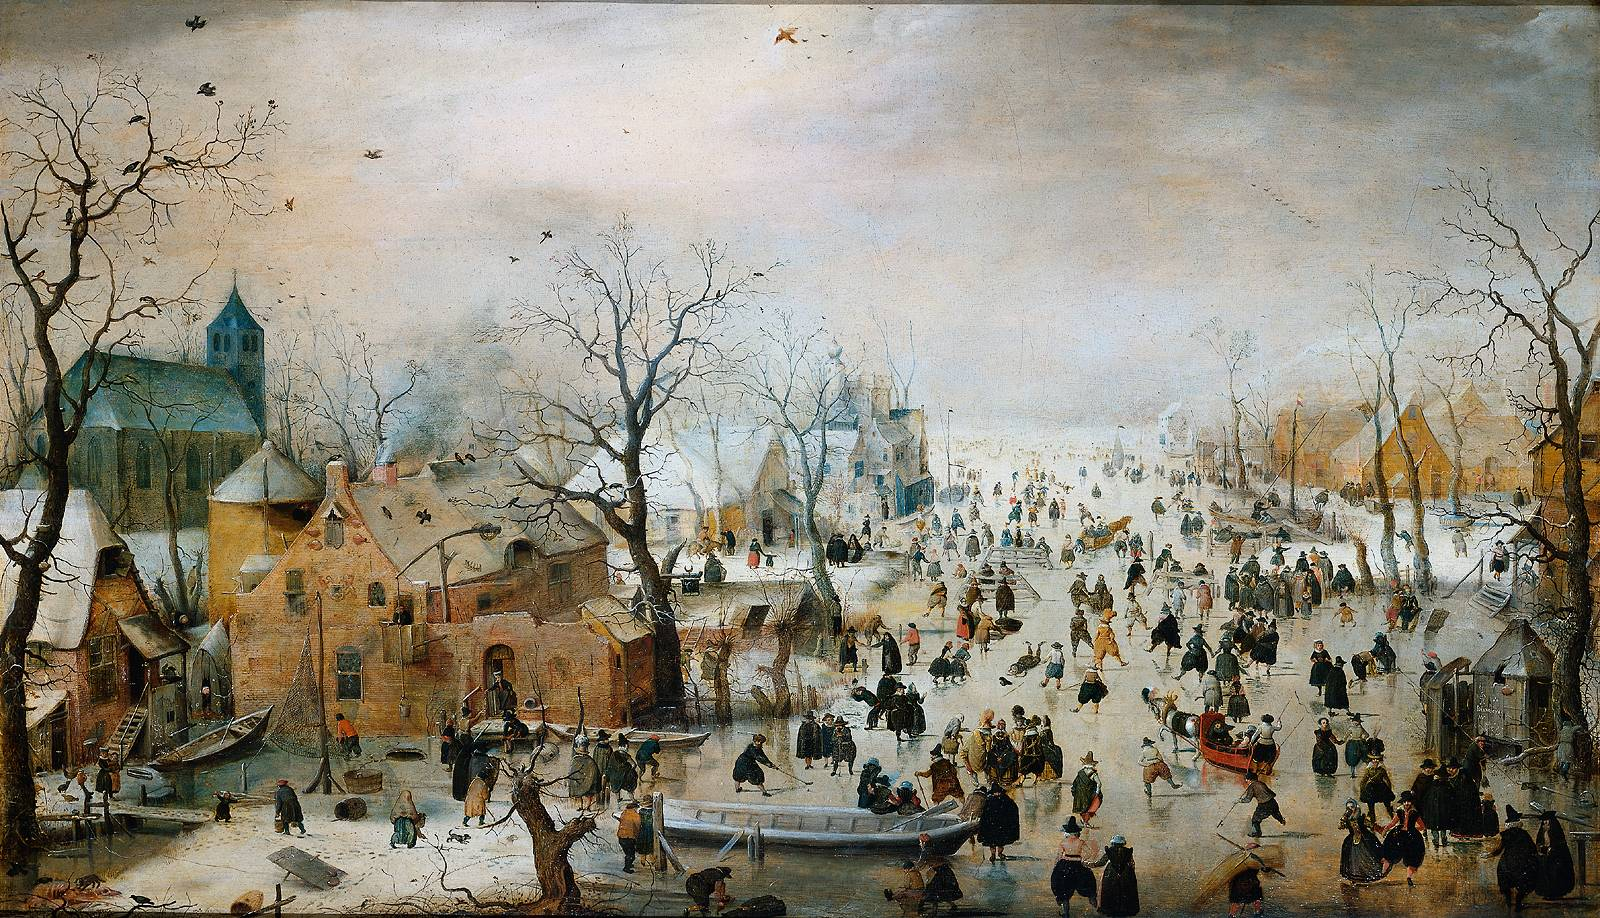 Avercamp's Winter Landscape With Iceskaters